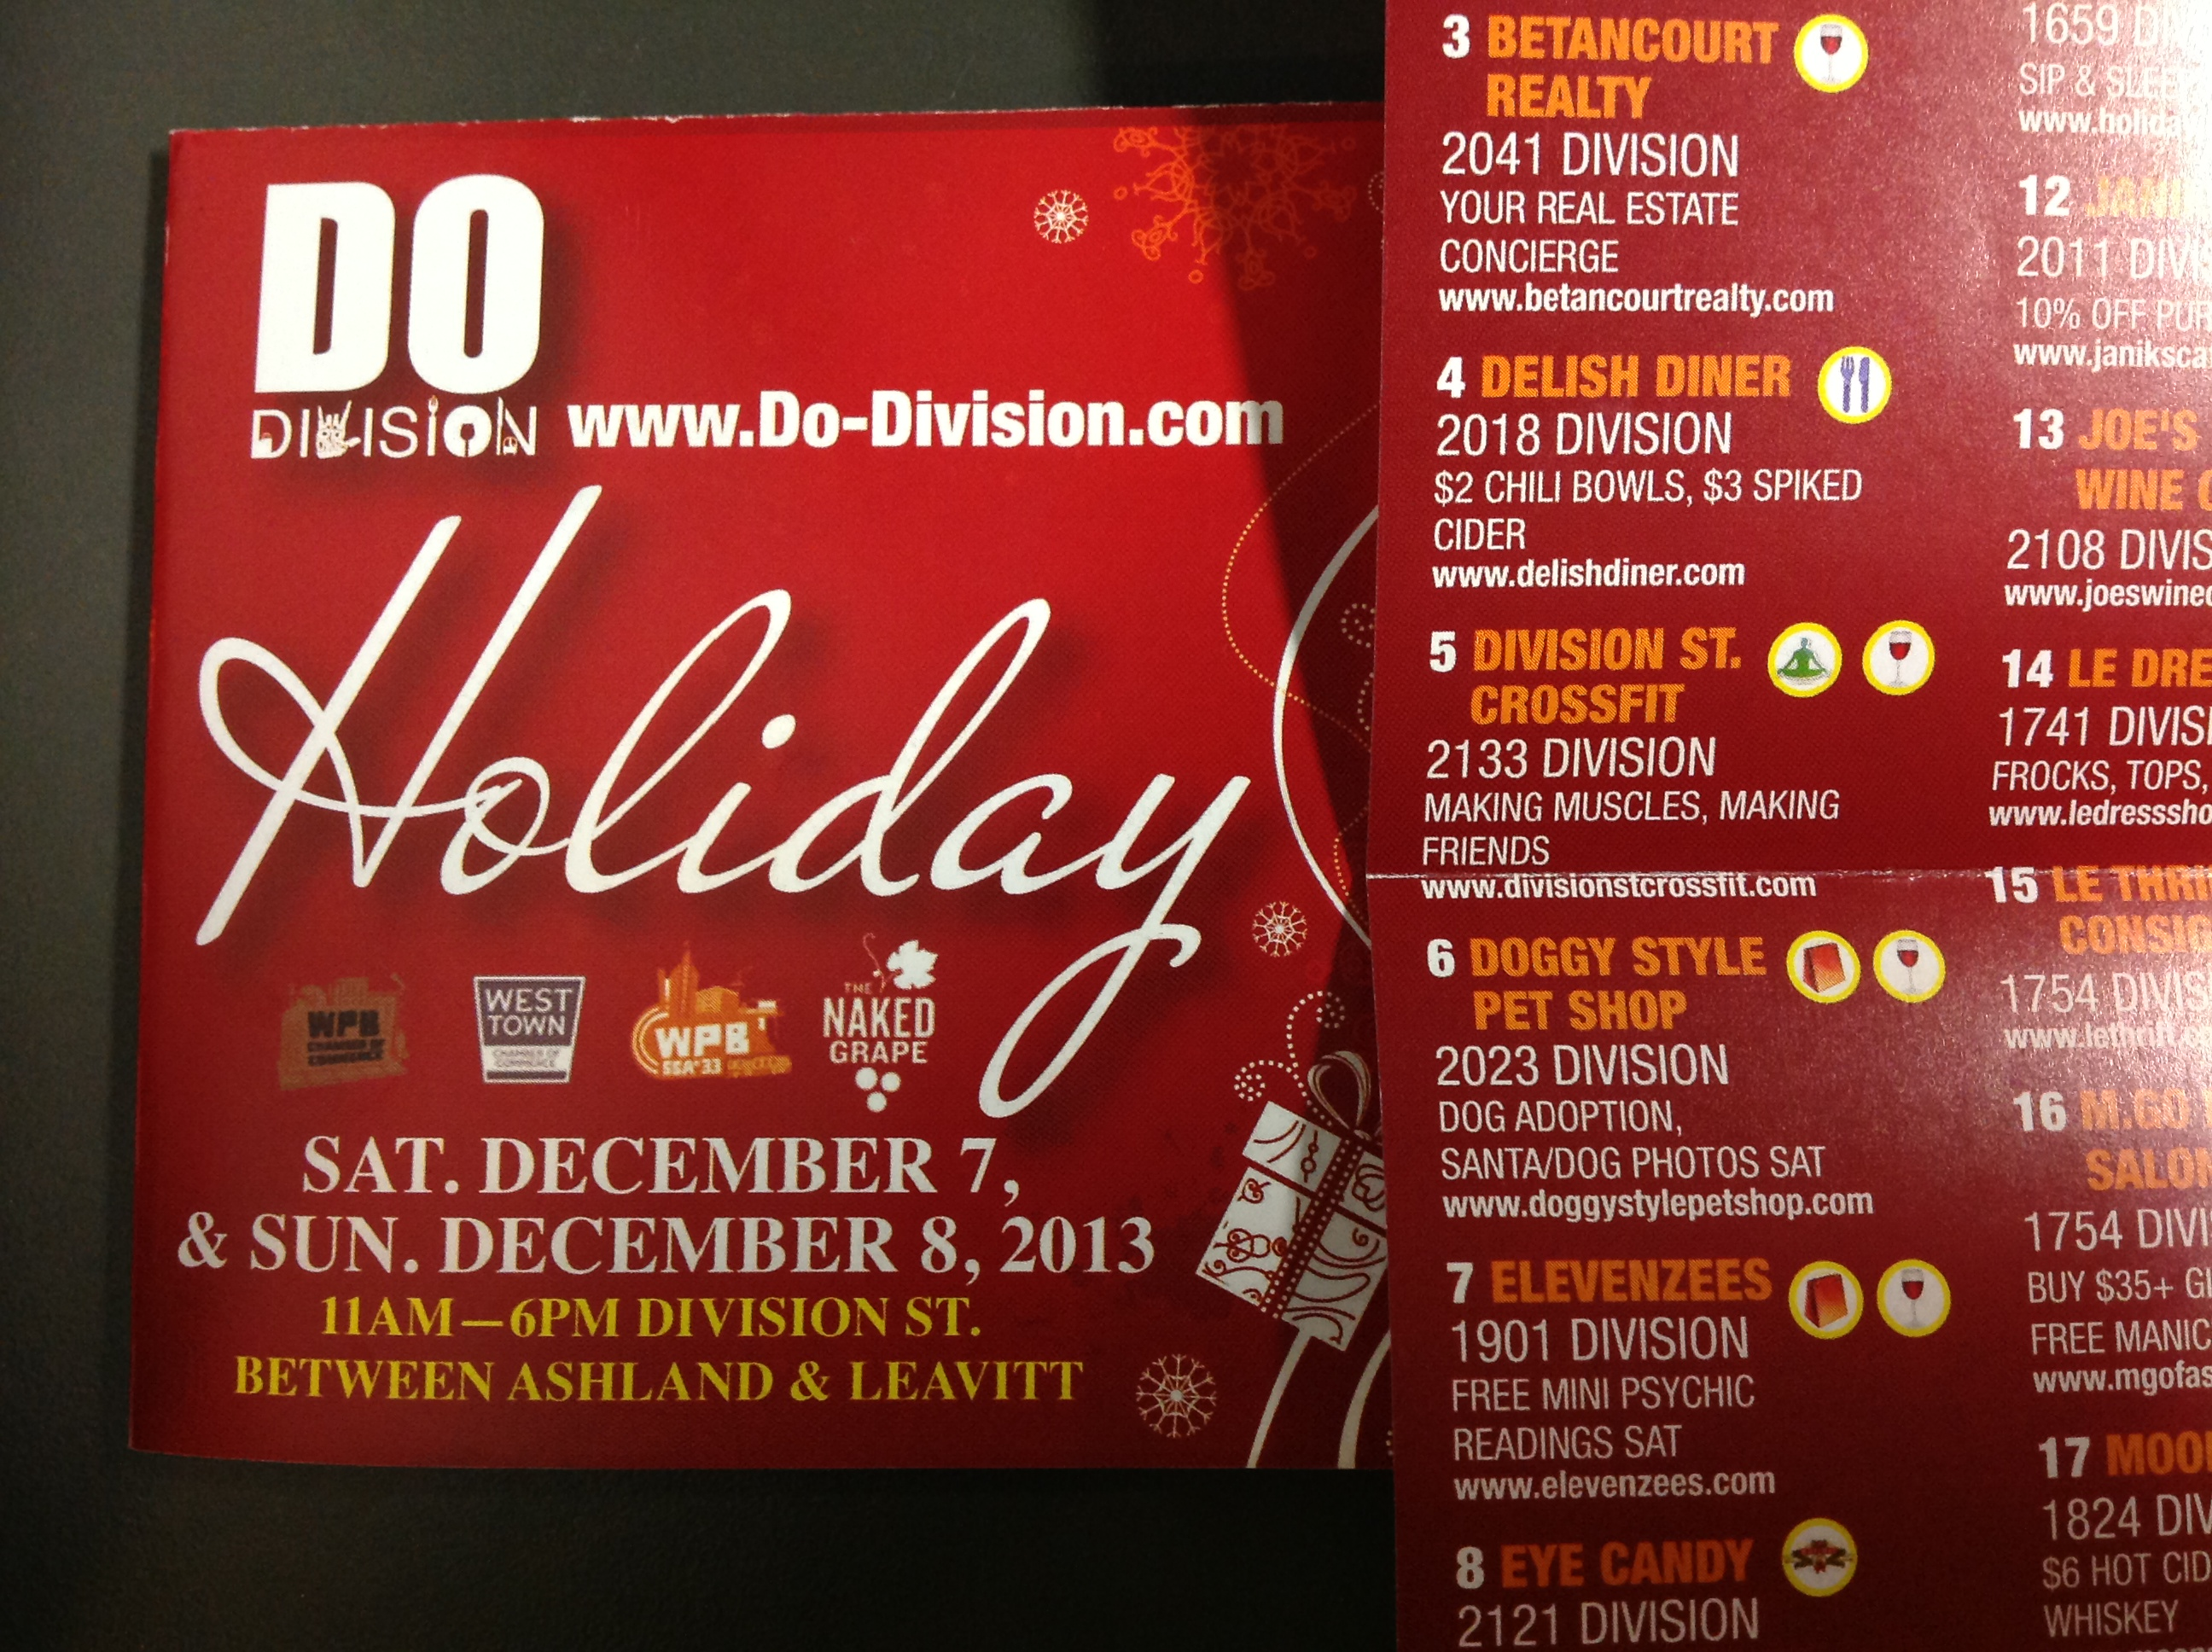 Do-Division Holiday – Division St  CrossFit | Chicago, IL